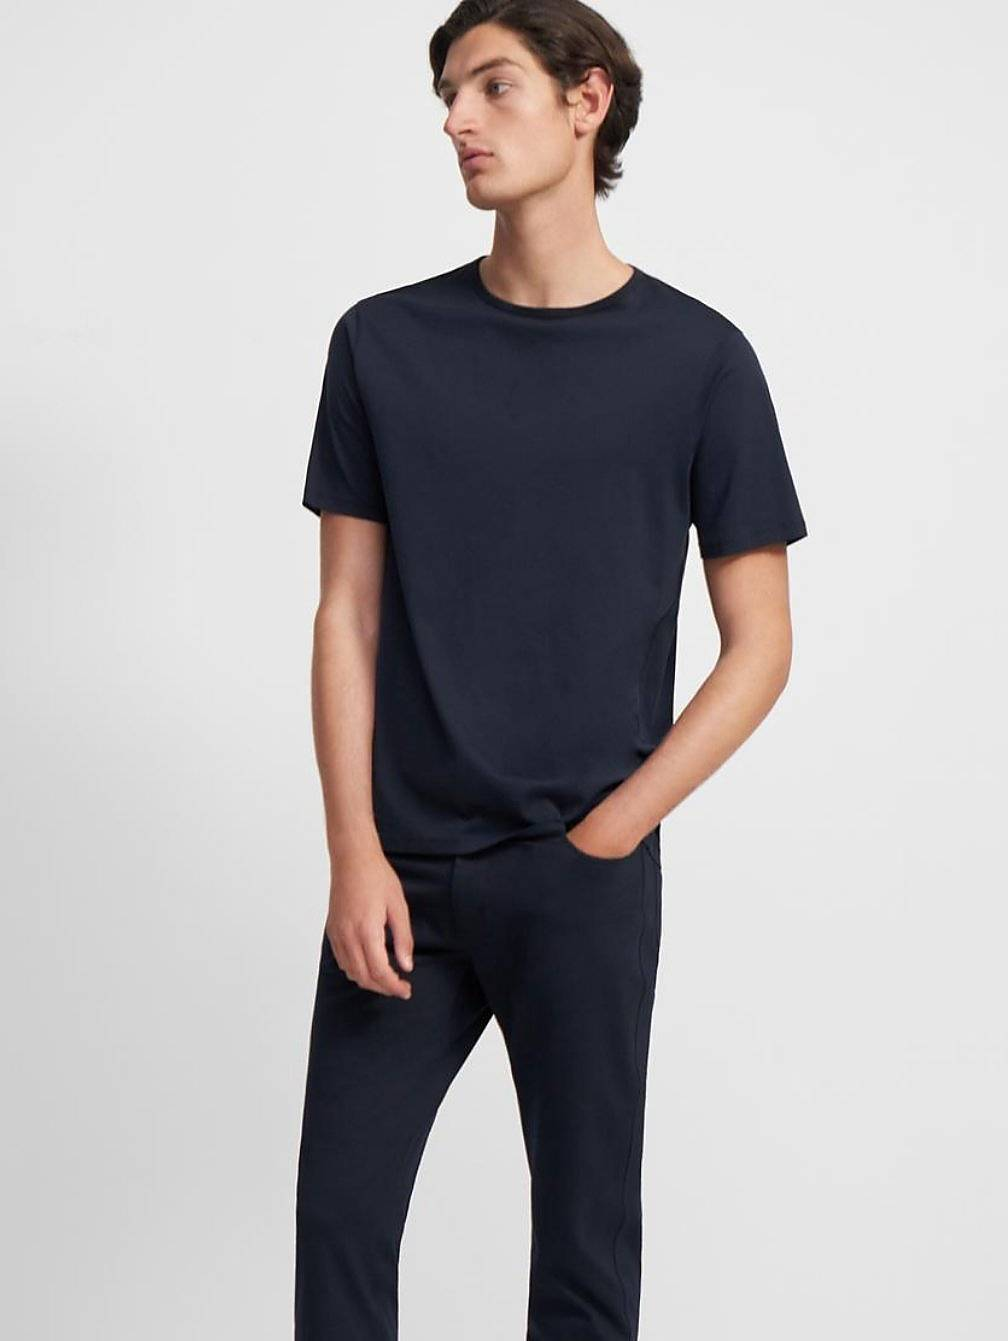 Shop the Look: PRECISE TEE